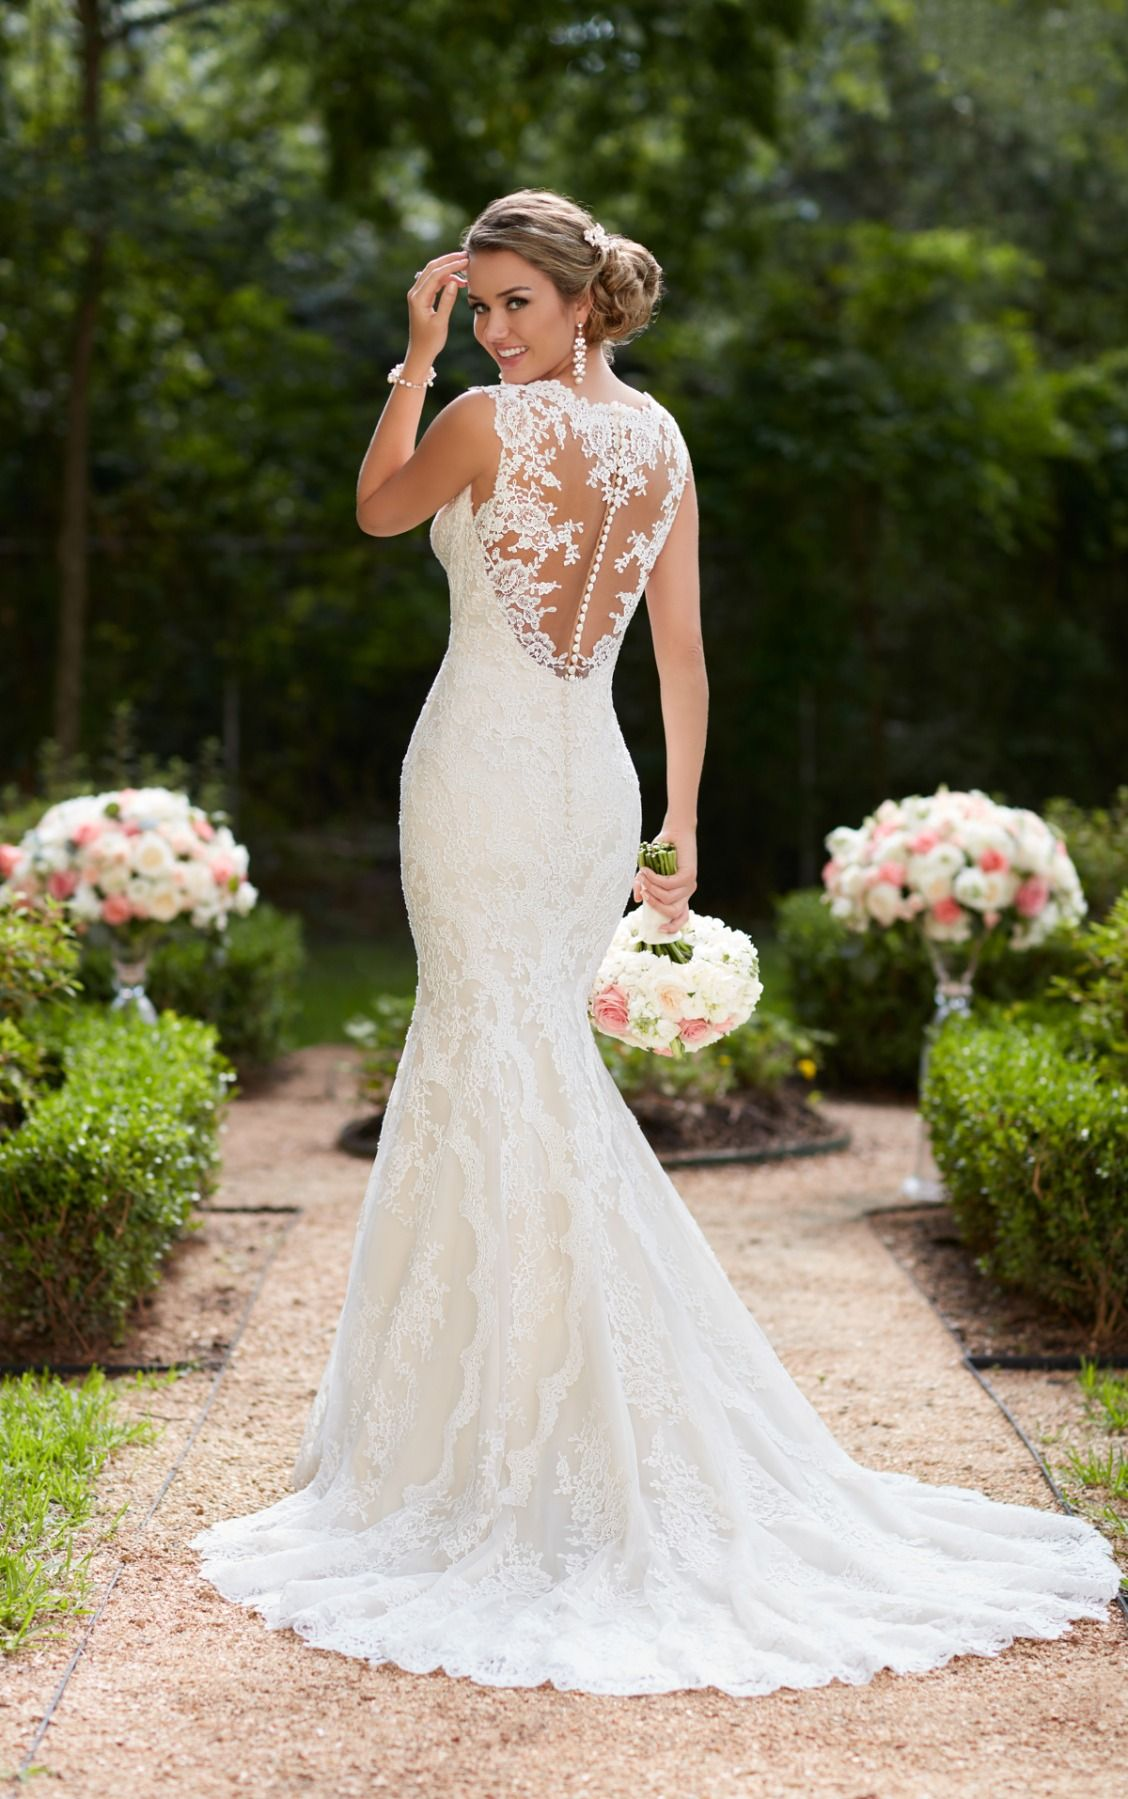 Lace wedding dresses vintage  This vintage lace trumpet wedding dress by Stella York features lace